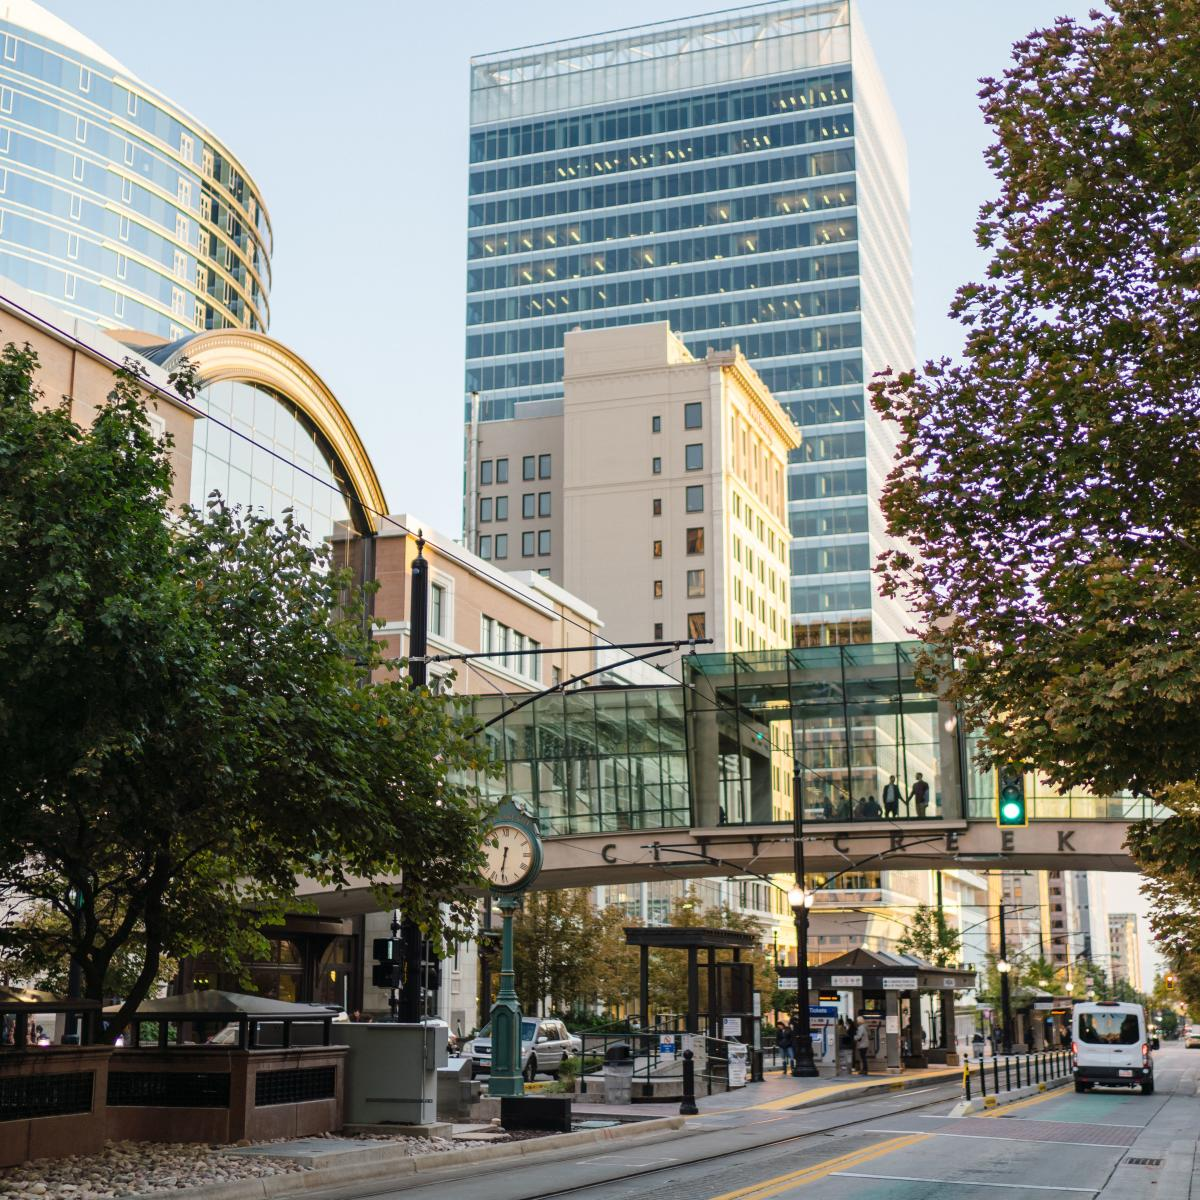 Top 7 Things to Do in Downtown Salt Lake City